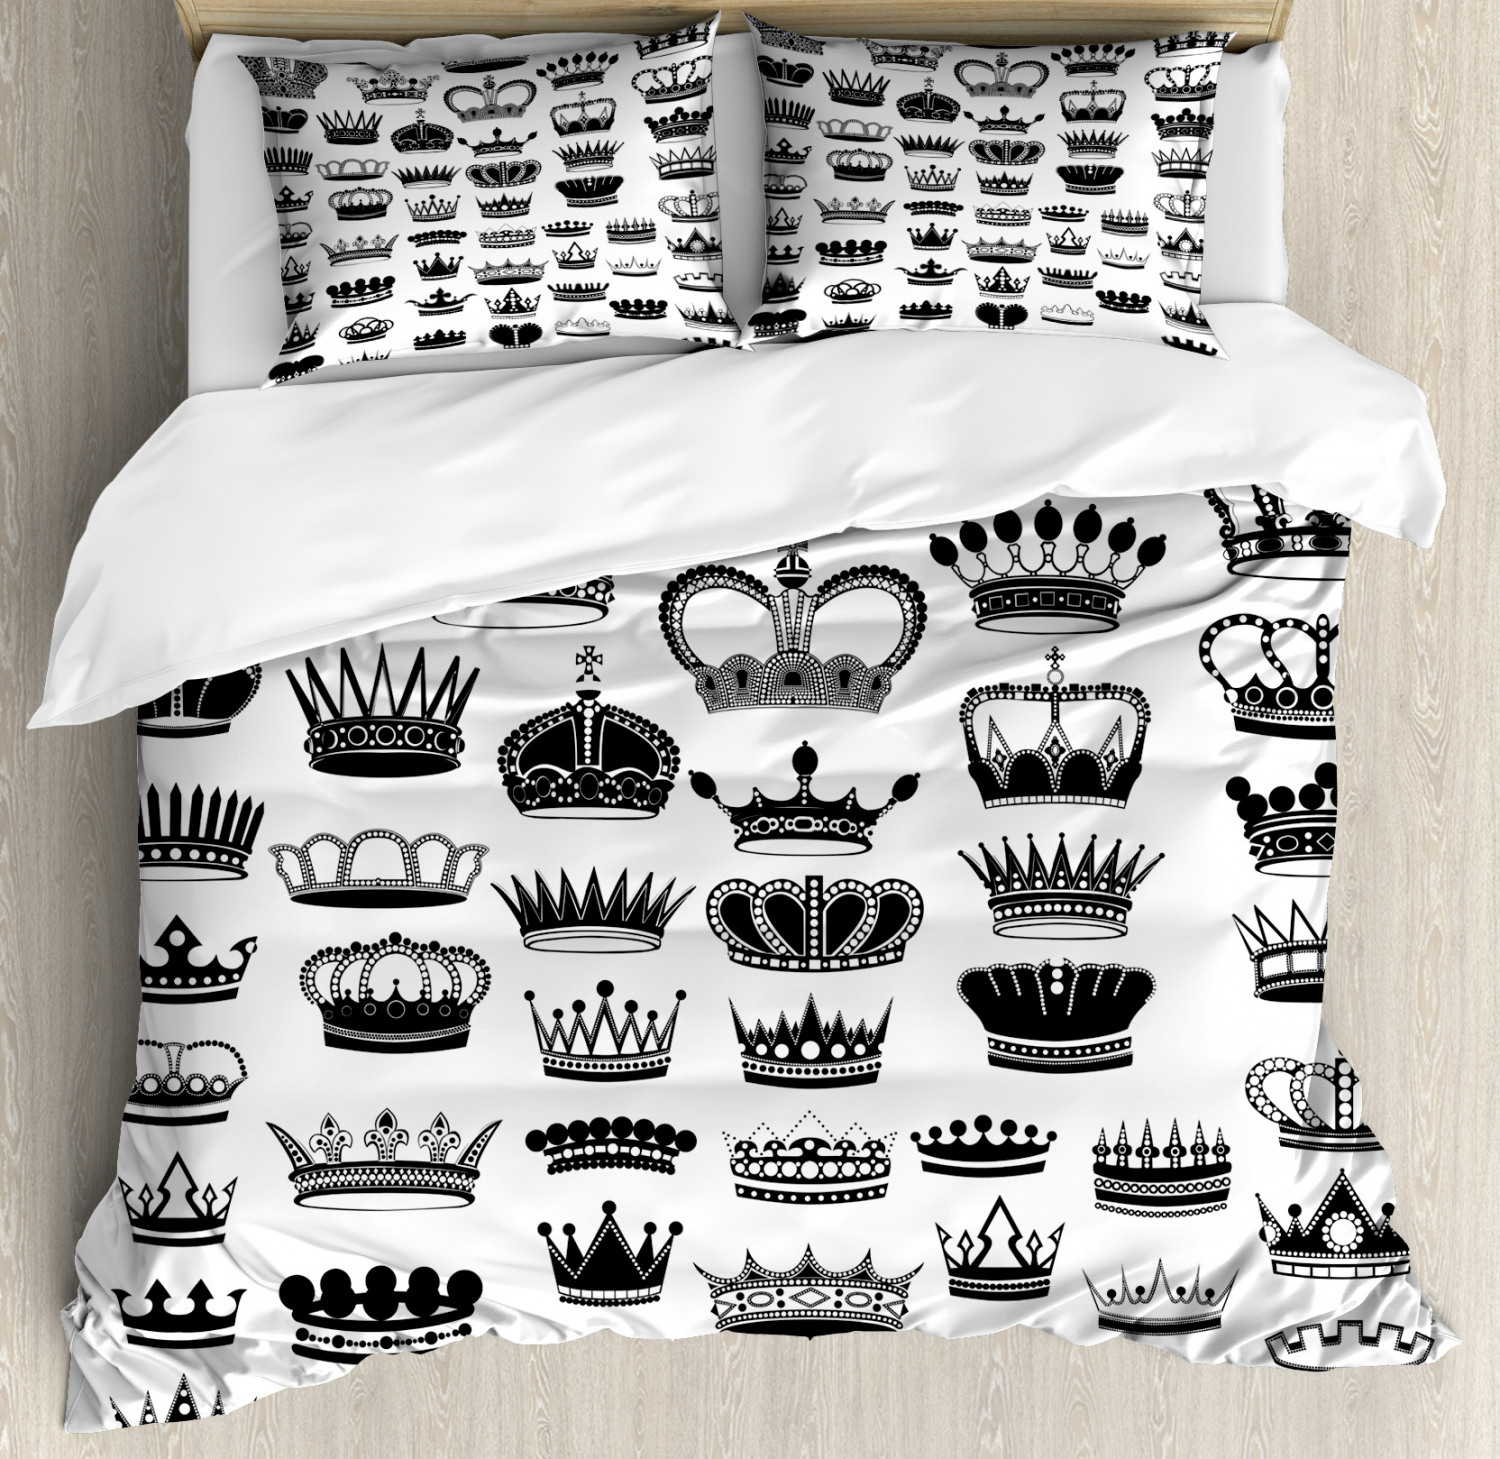 Queen Duvet Cover Set Big Silhouette Crown Set Monarchy Imperial Ruler Icons Antique Ancient Vintage Decorative Bedding Set With Pillow Shams Black And White By Ambesonne Walmart Com Walmart Com